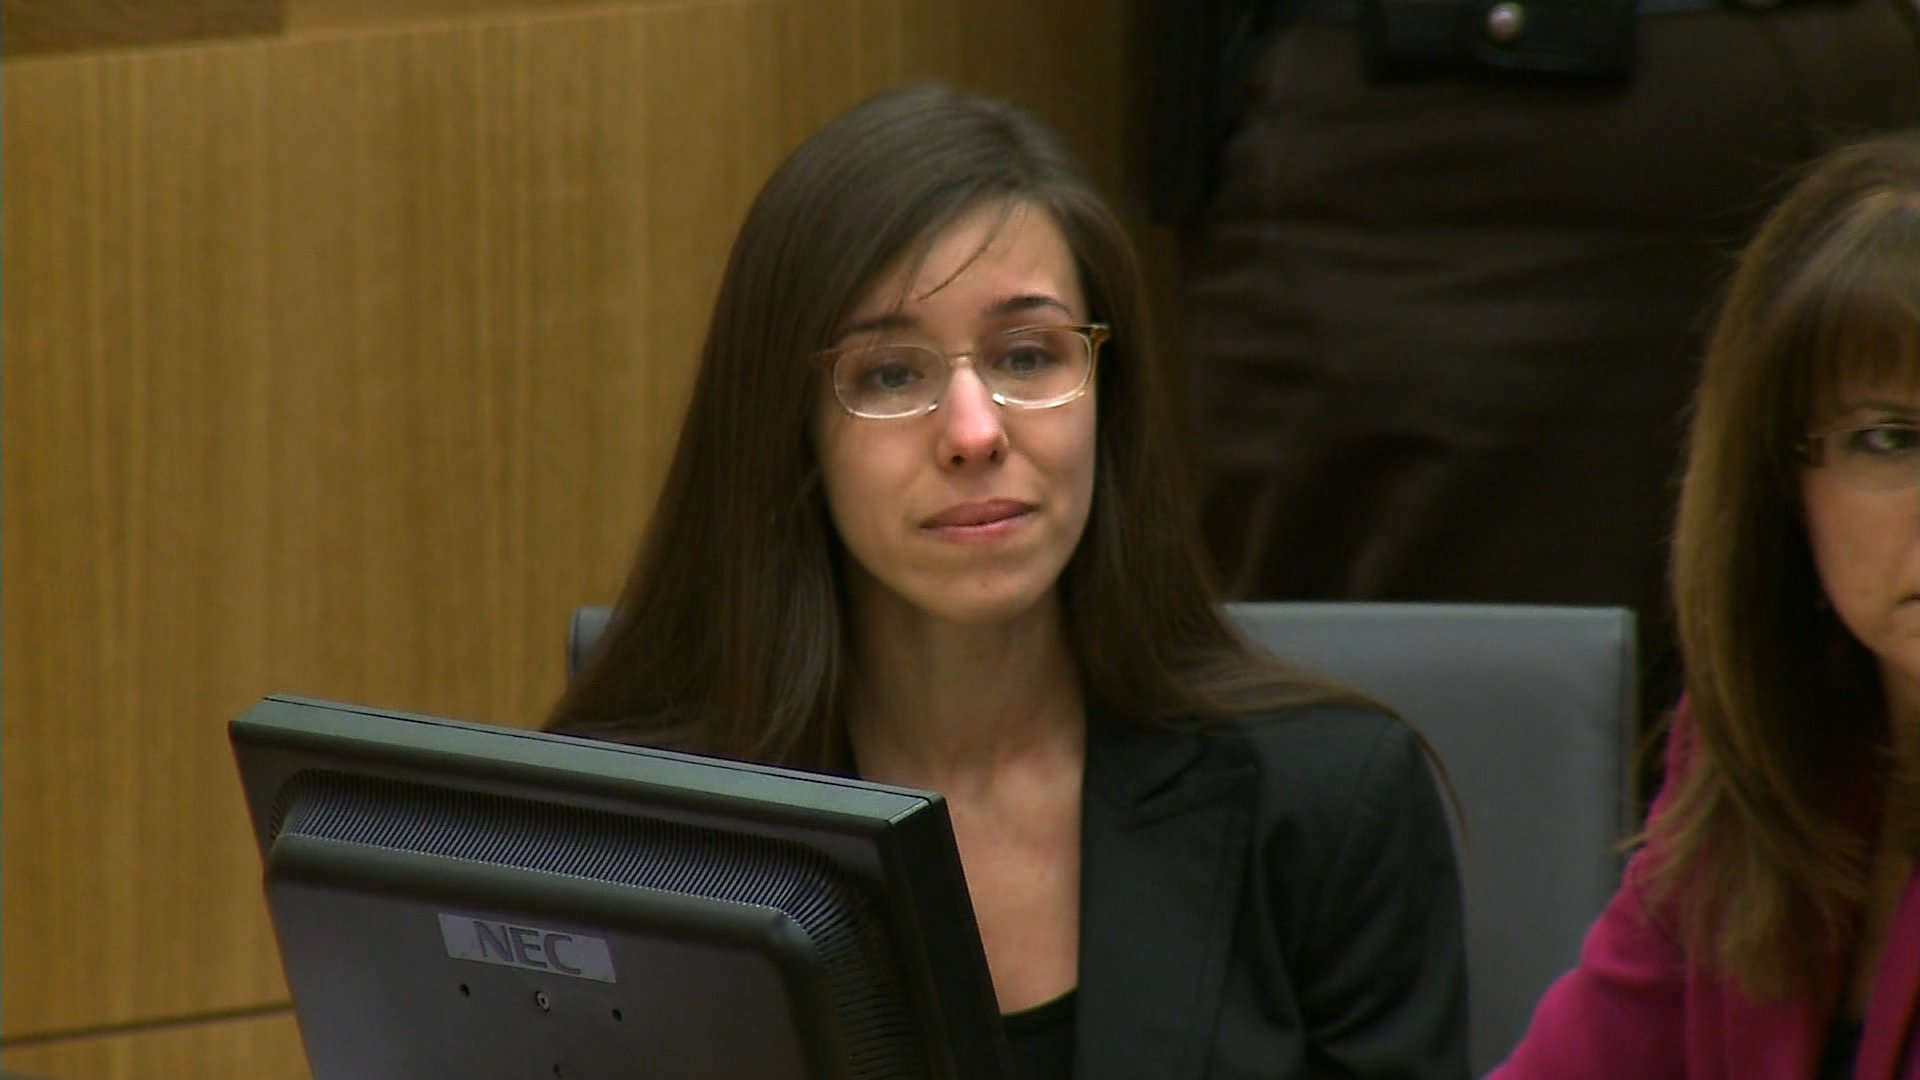 An Arizona jury Thursday said it was unable to reach a unanimous agreement and would be unable to decide what penalty Jodi Arias should receive for killing her ex-boyfriend. (Credit: CNN)